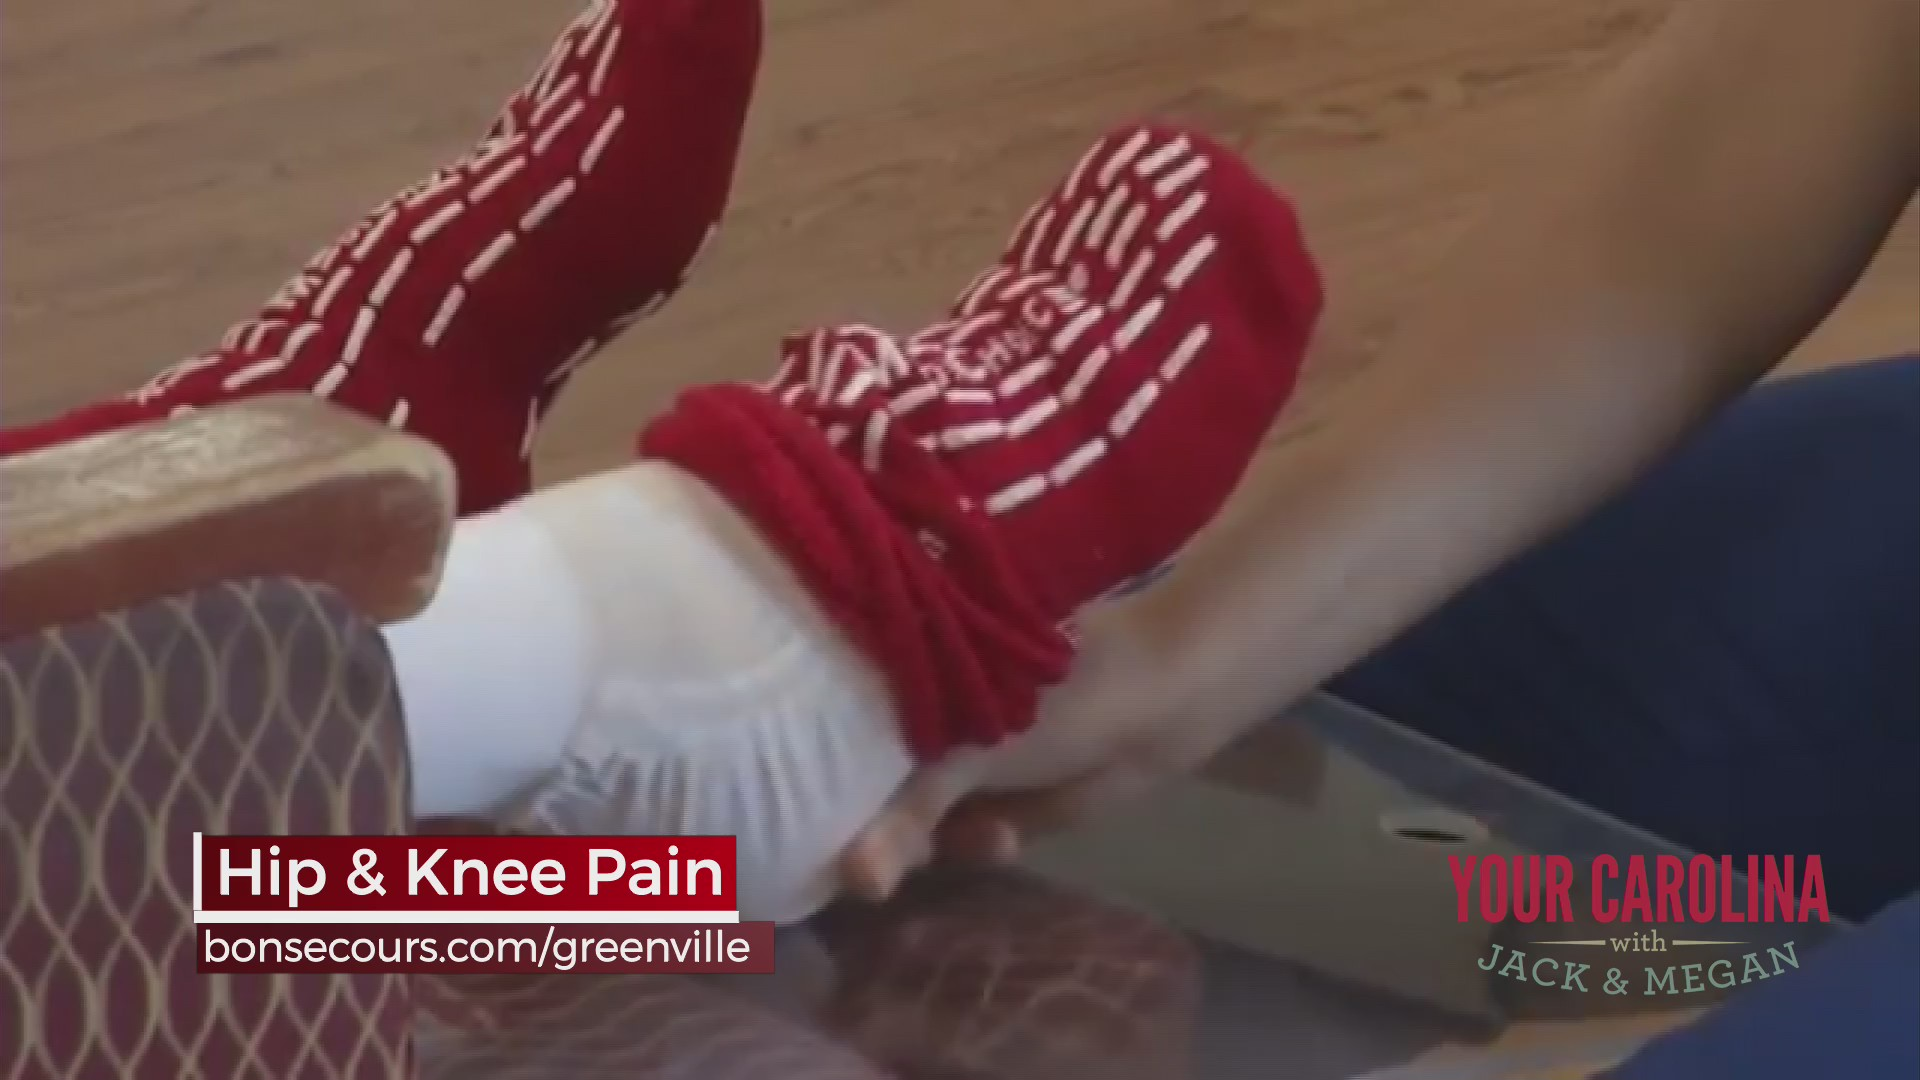 Hip & Knee Pain